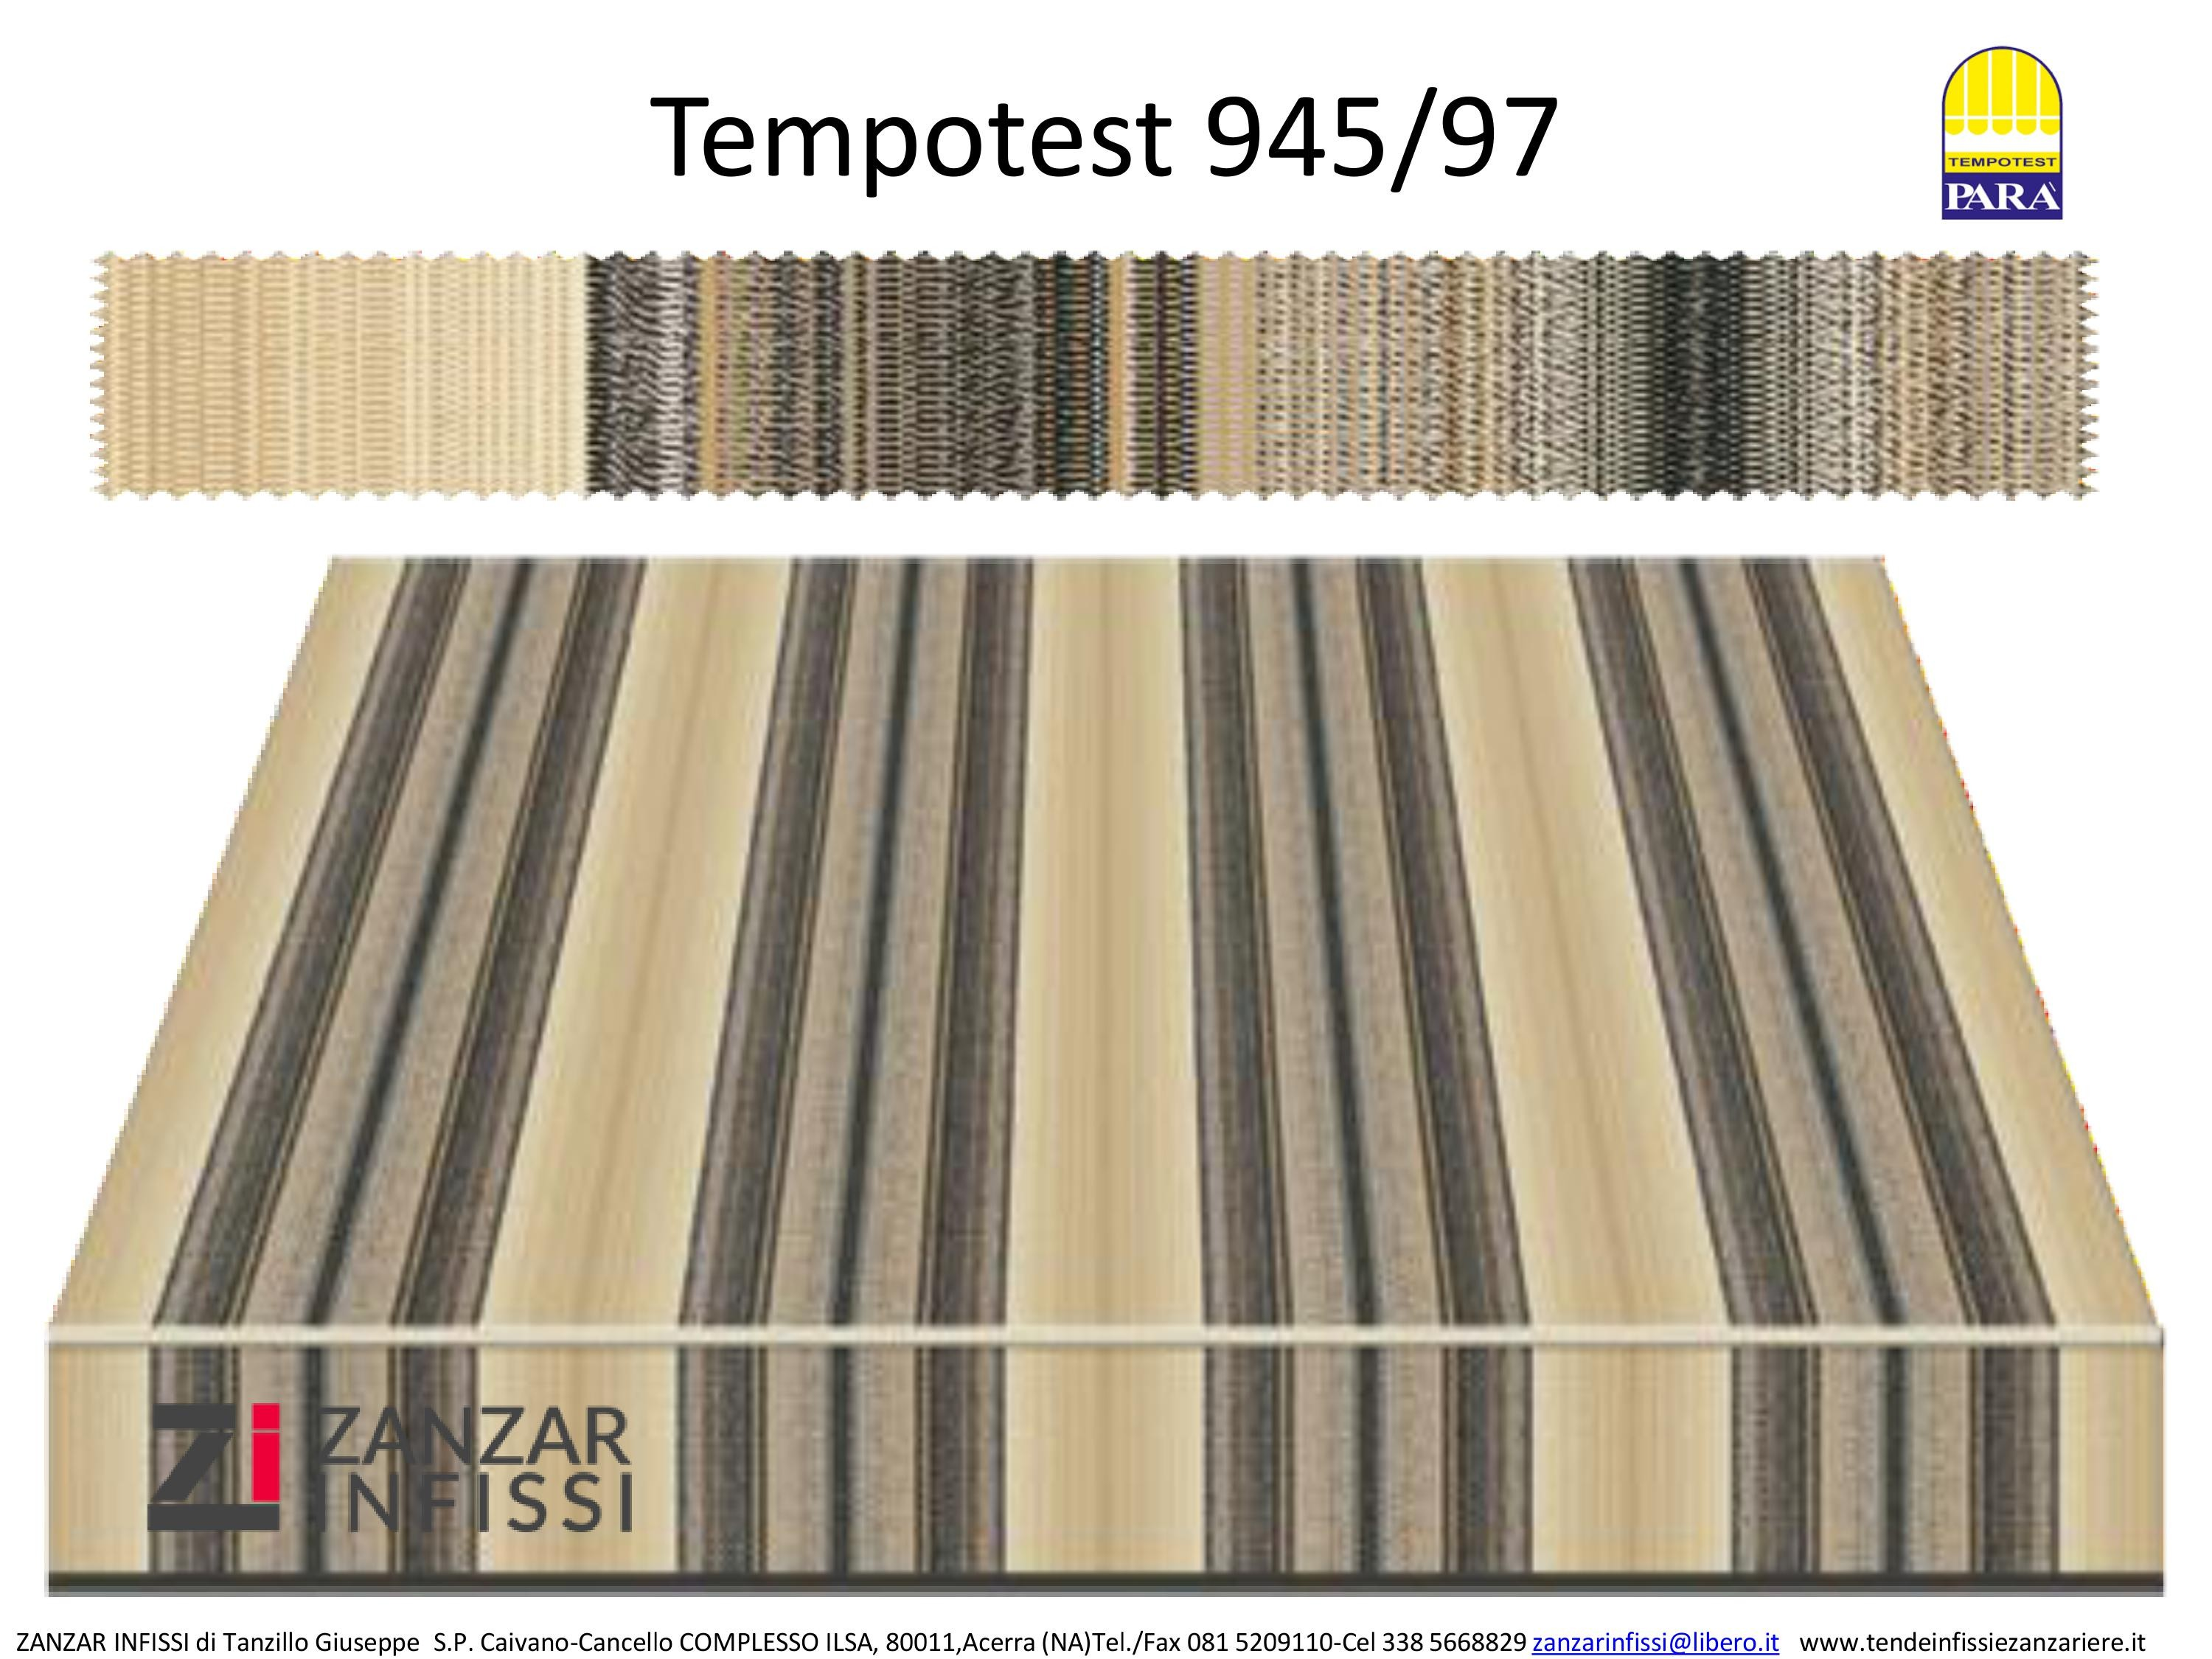 Tempotest 945/97